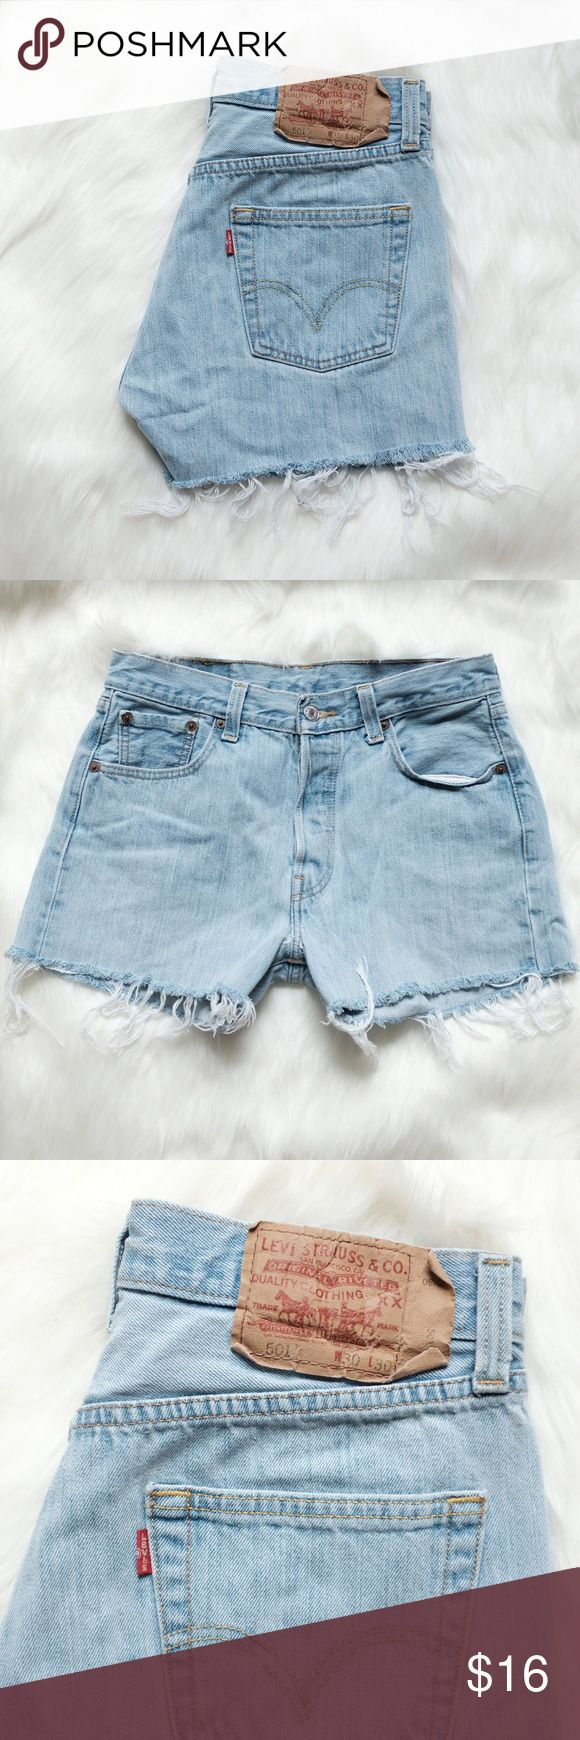 """Vintage Levi's 501s denim cut-offs Vintage lightwash Levi's 501s from my personal stash. I'm selling cheap. Please look at my other new listings because sizing is similar and you can bundle to save on total price and shipping! #vintage #levis #501s #retro #distressed  Fits a 27"""" waist best Inseam is 3""""  **Good condition except for small hole near crotch (can be seen on left side in second photo)** Levi's Shorts Jean Shorts"""